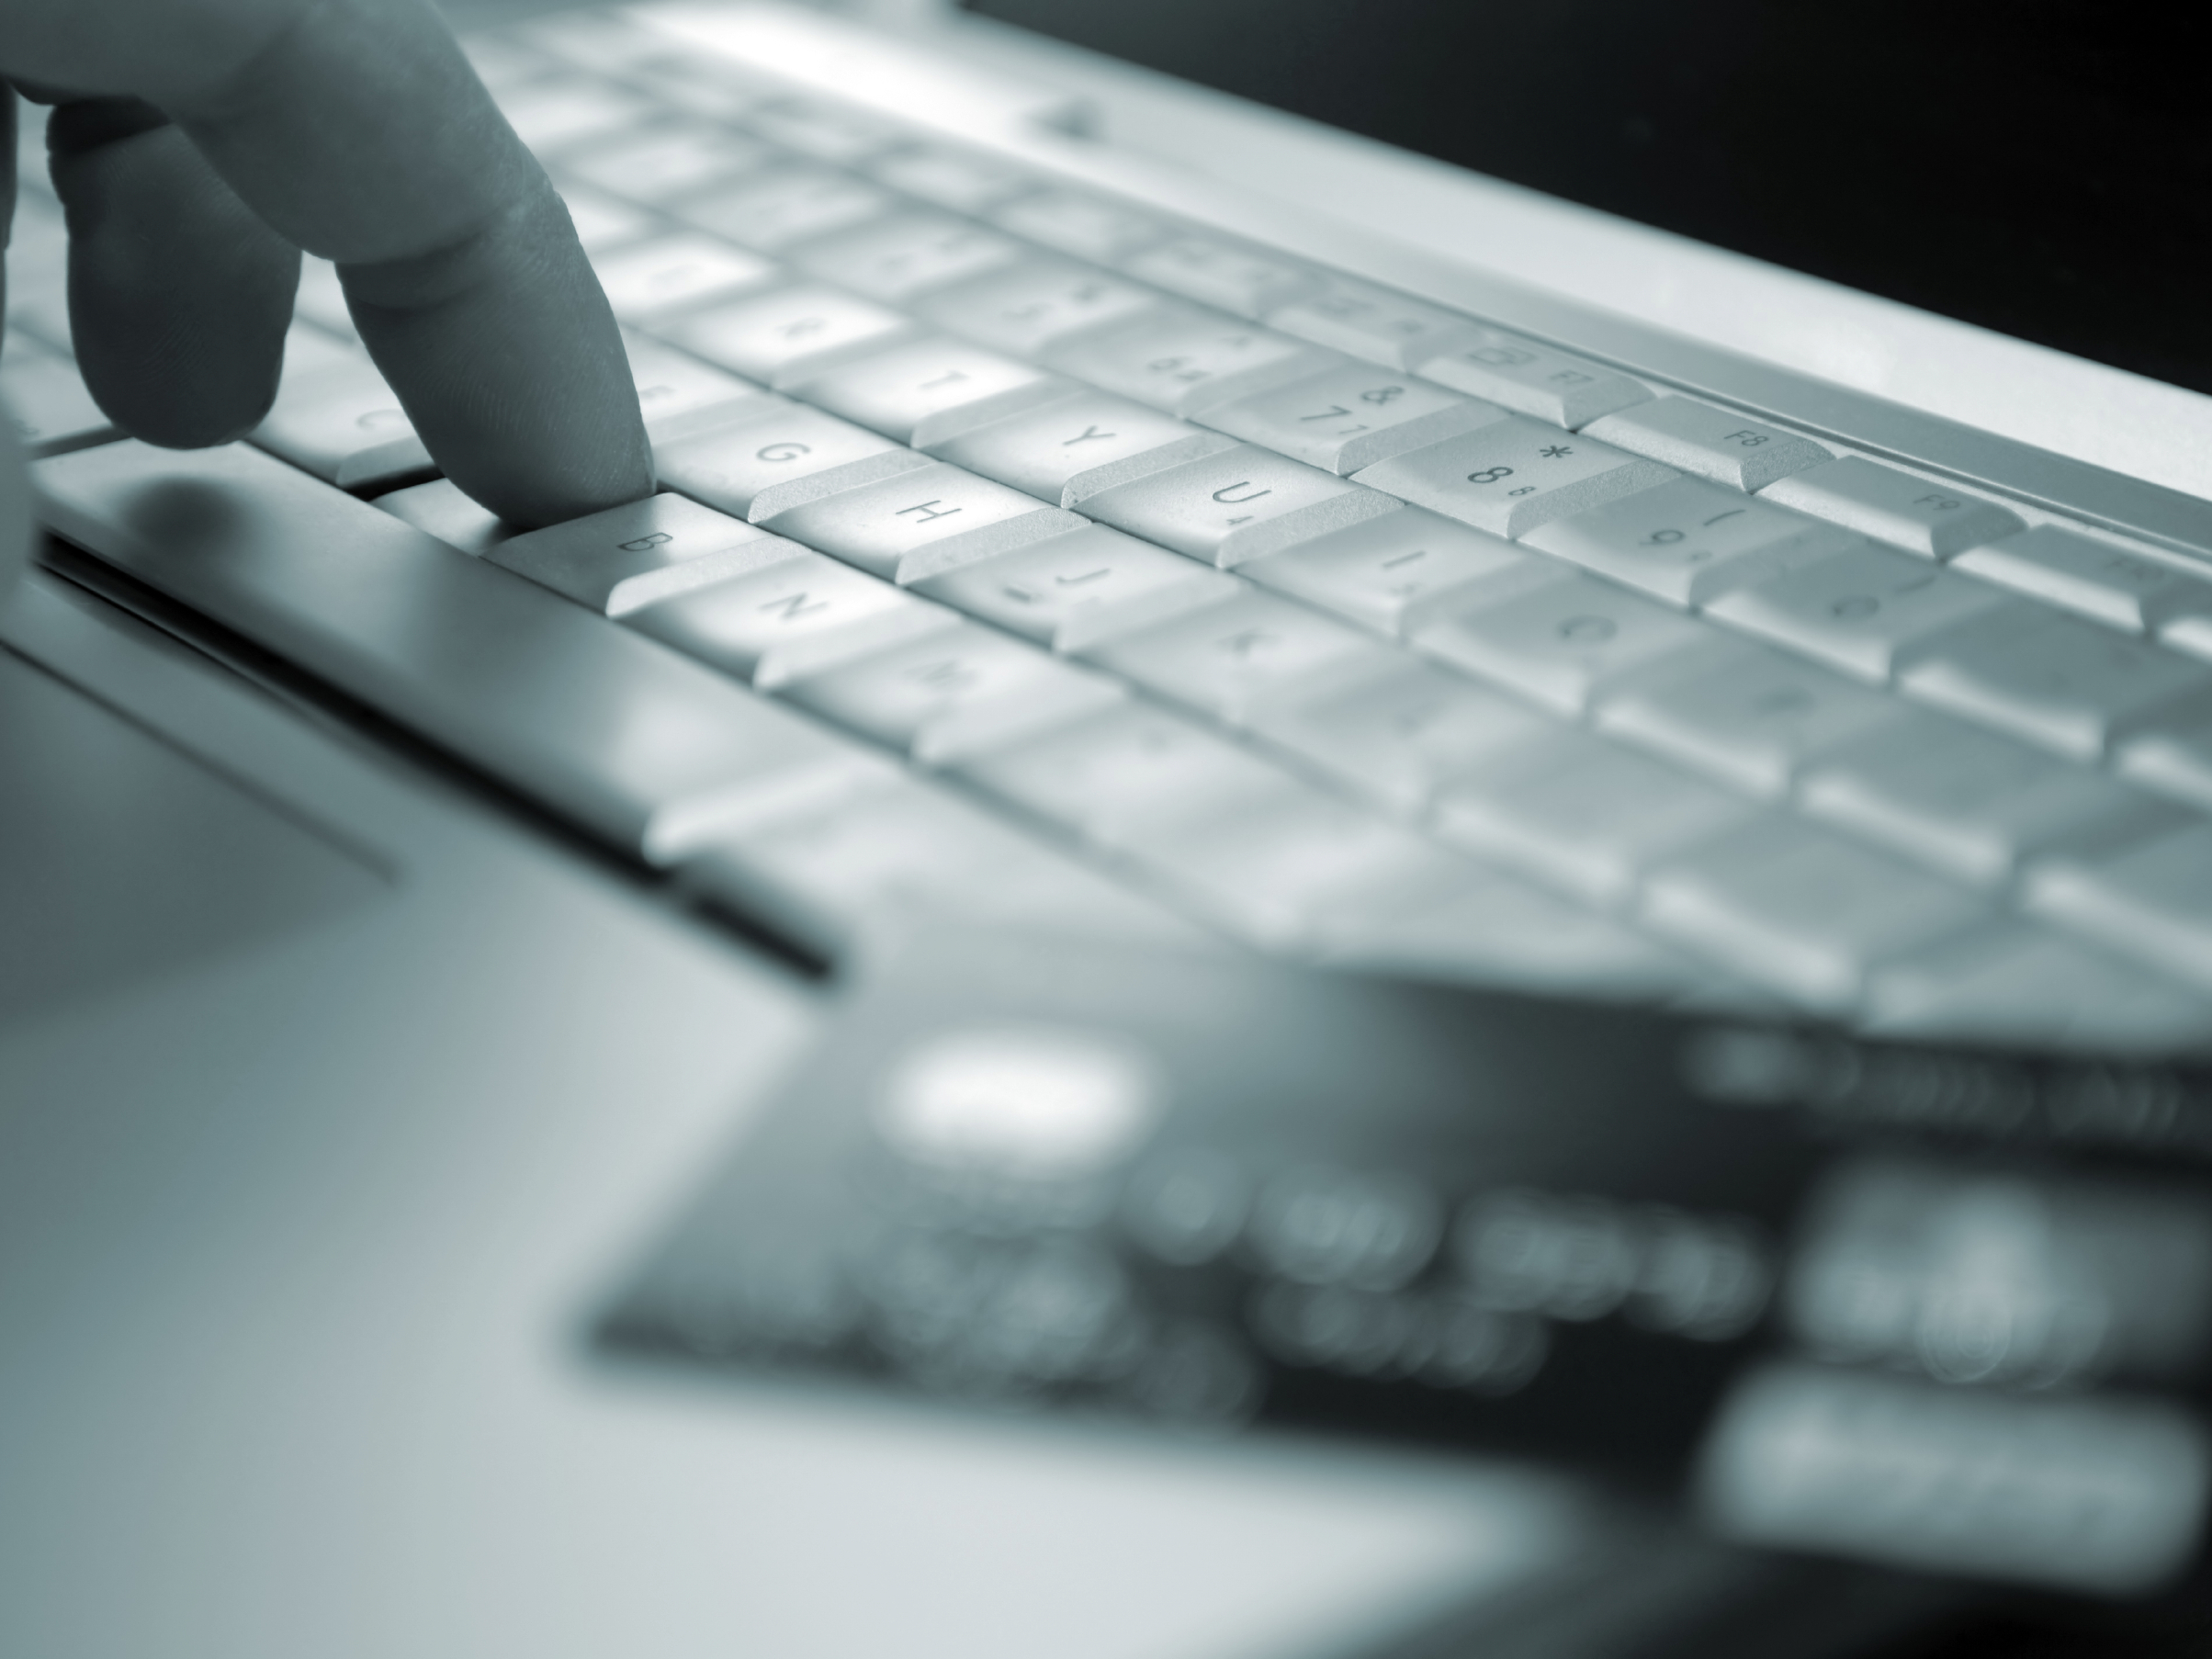 Hurting For Cash, Online Porn Tries New Tricks